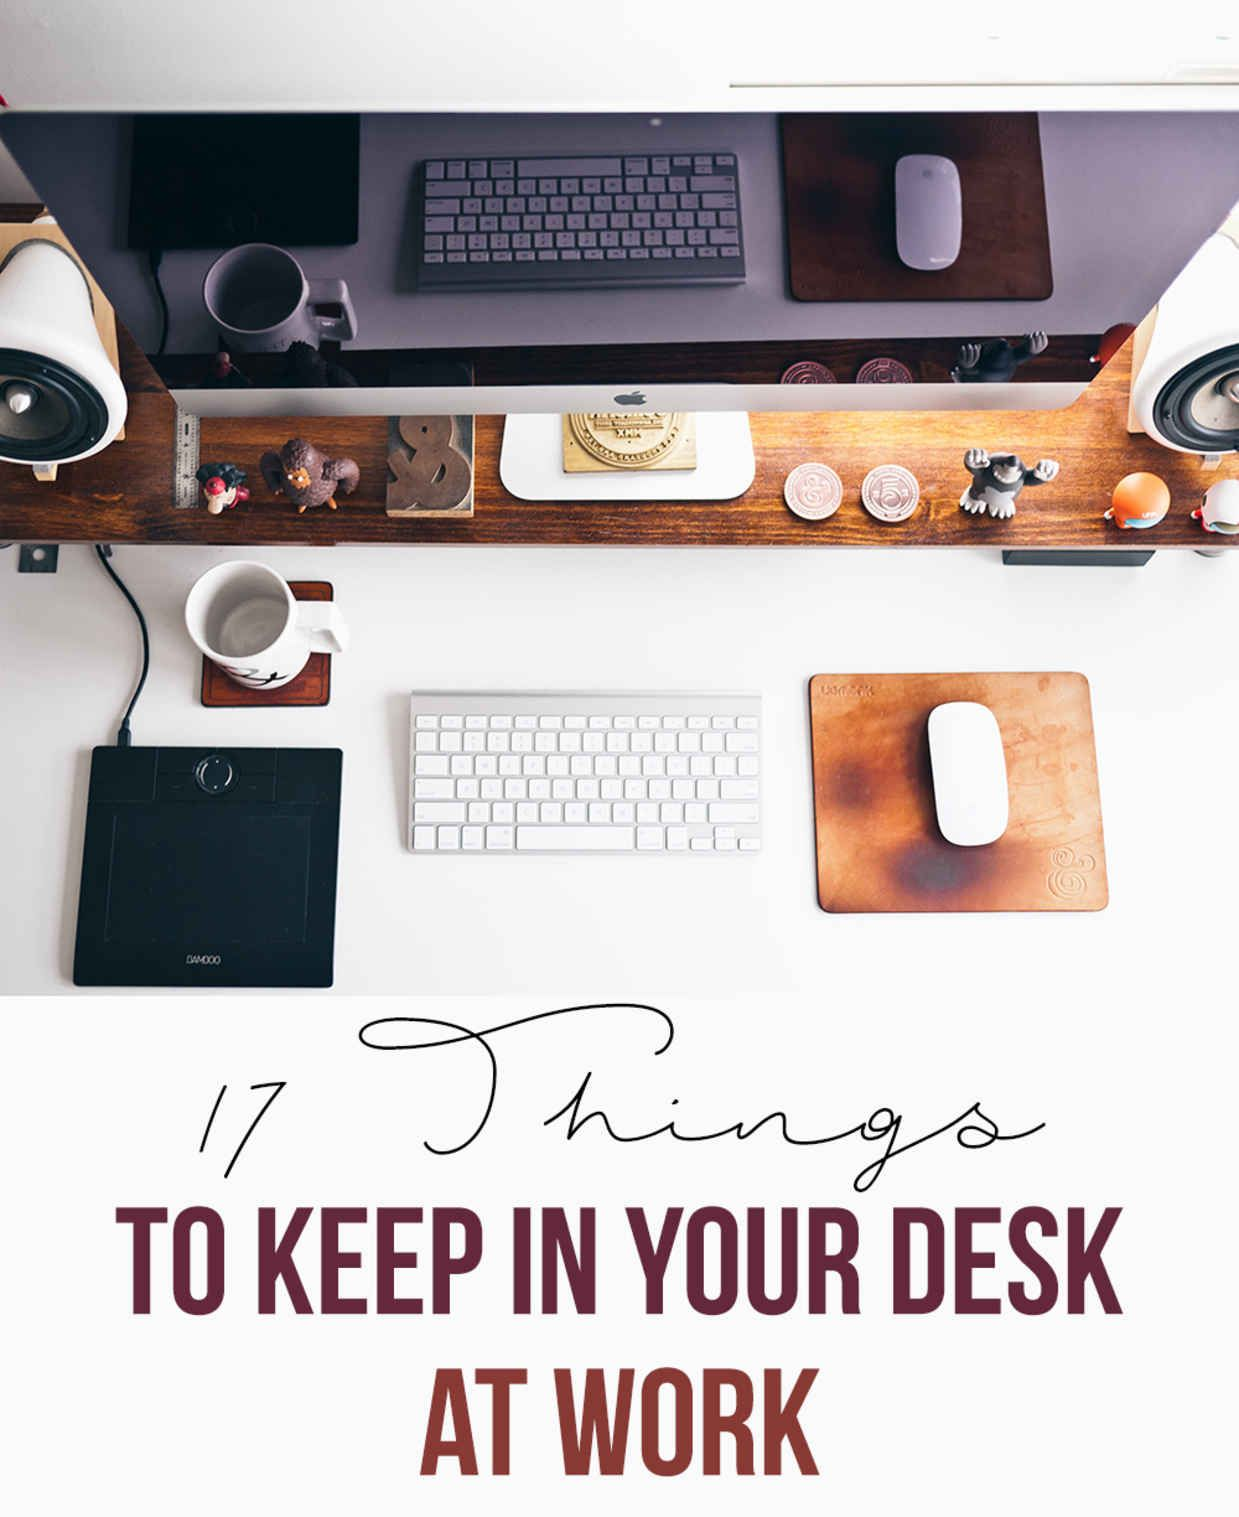 Home Office Design Tips To Stay Healthy: 17 Things To Keep In Your Desk At Work